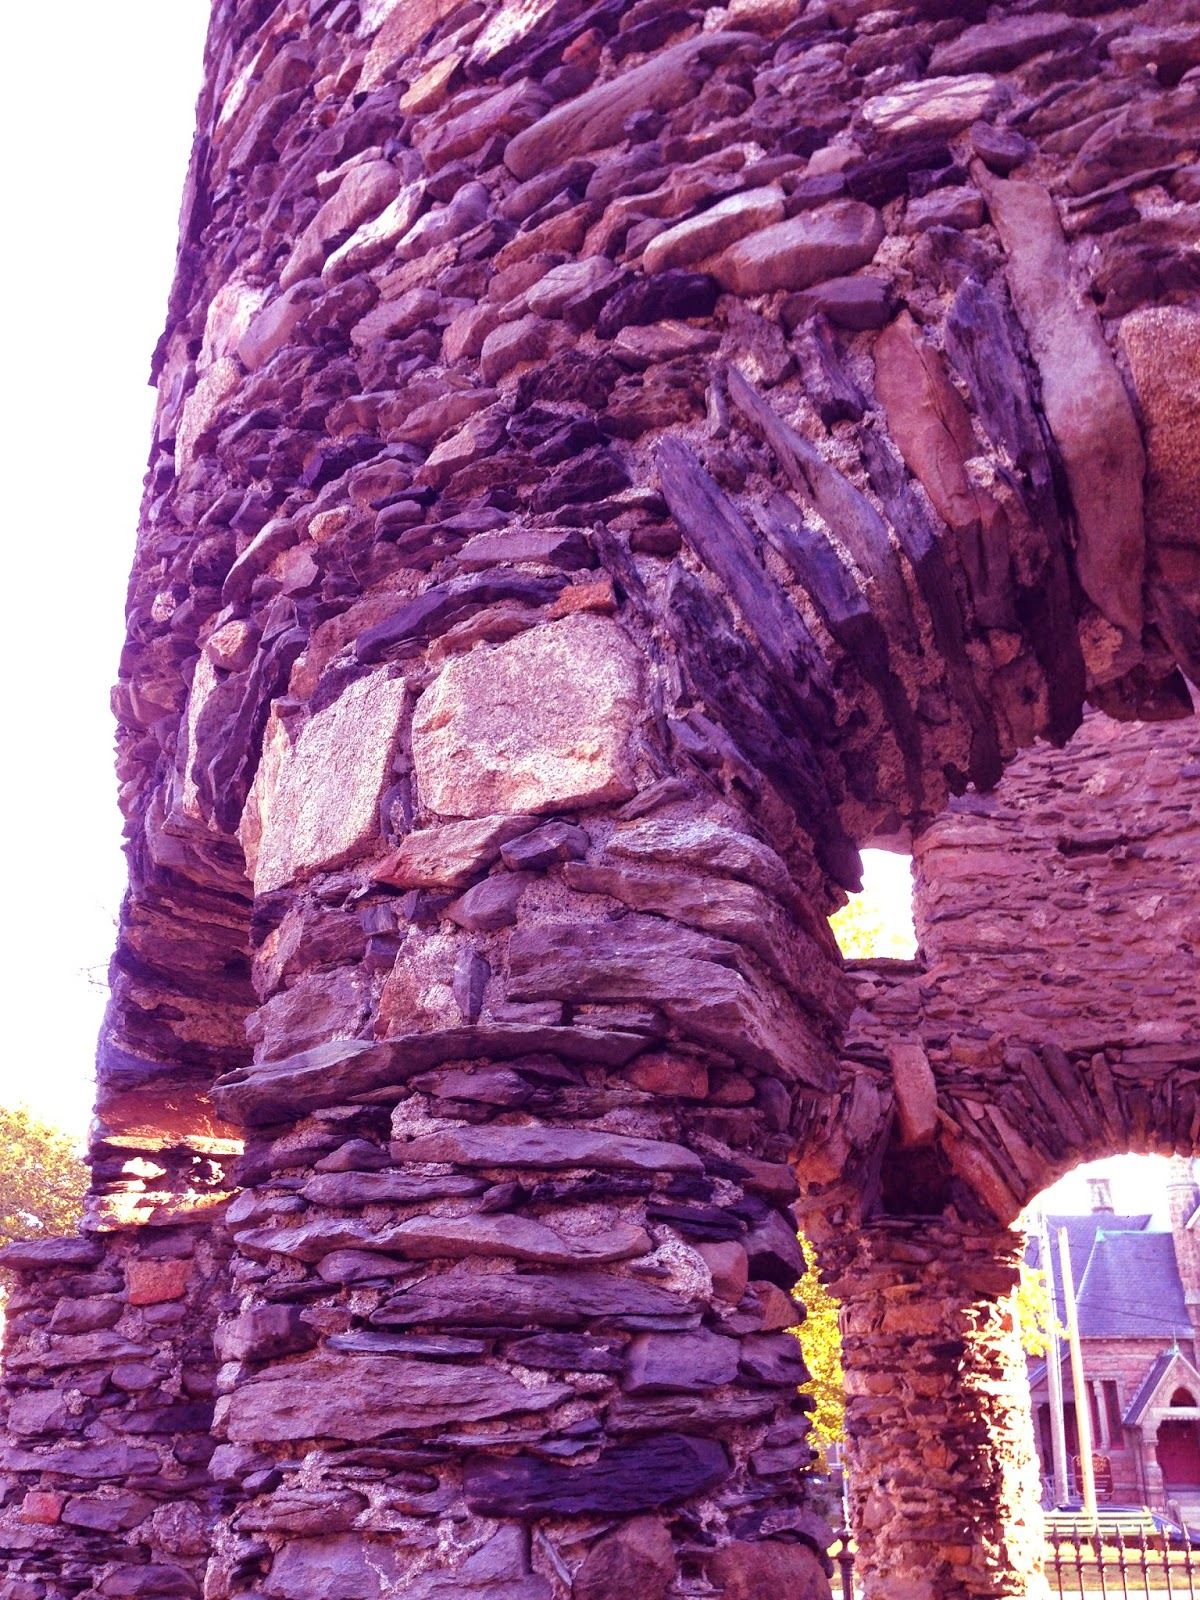 newport tower carbon dating Templars discover america  the newport tower  carbon-14 dating made of mortar from the tower in 1992 placed the.